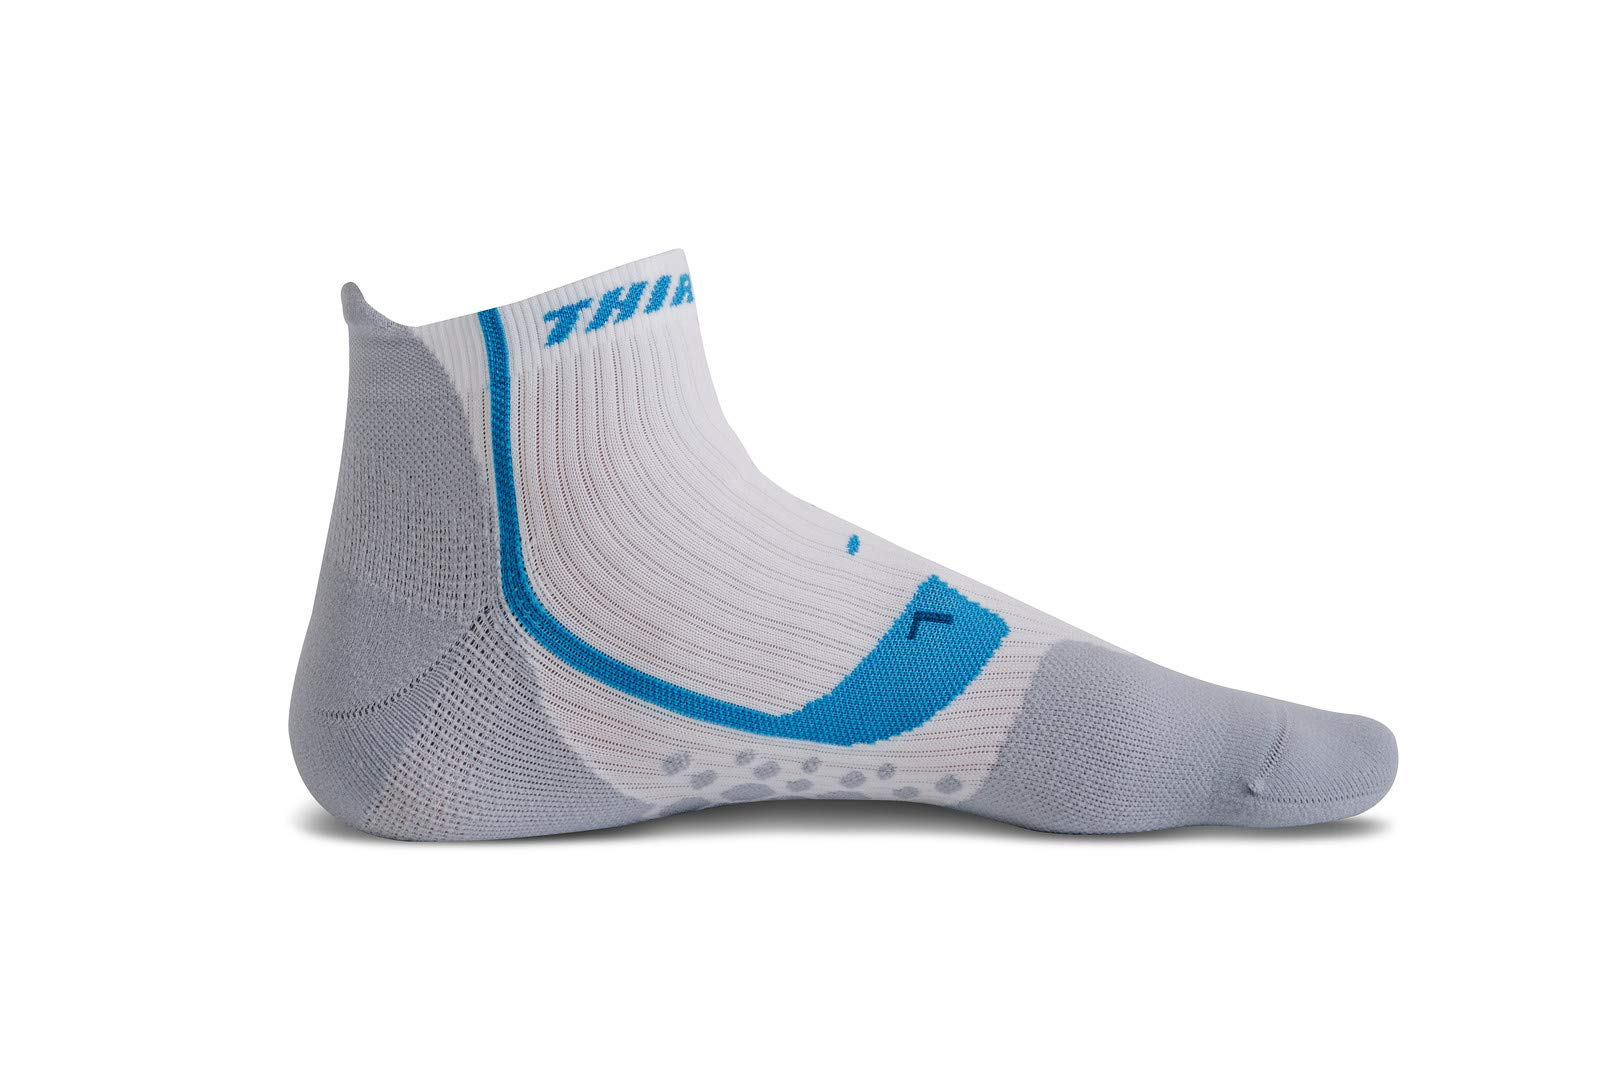 Thirty 48 Compression Low-Cut Running Socks for Men and Women (Small - Women 5-6.5 // Men 6-7.5, [1 Pair] Blue/White)